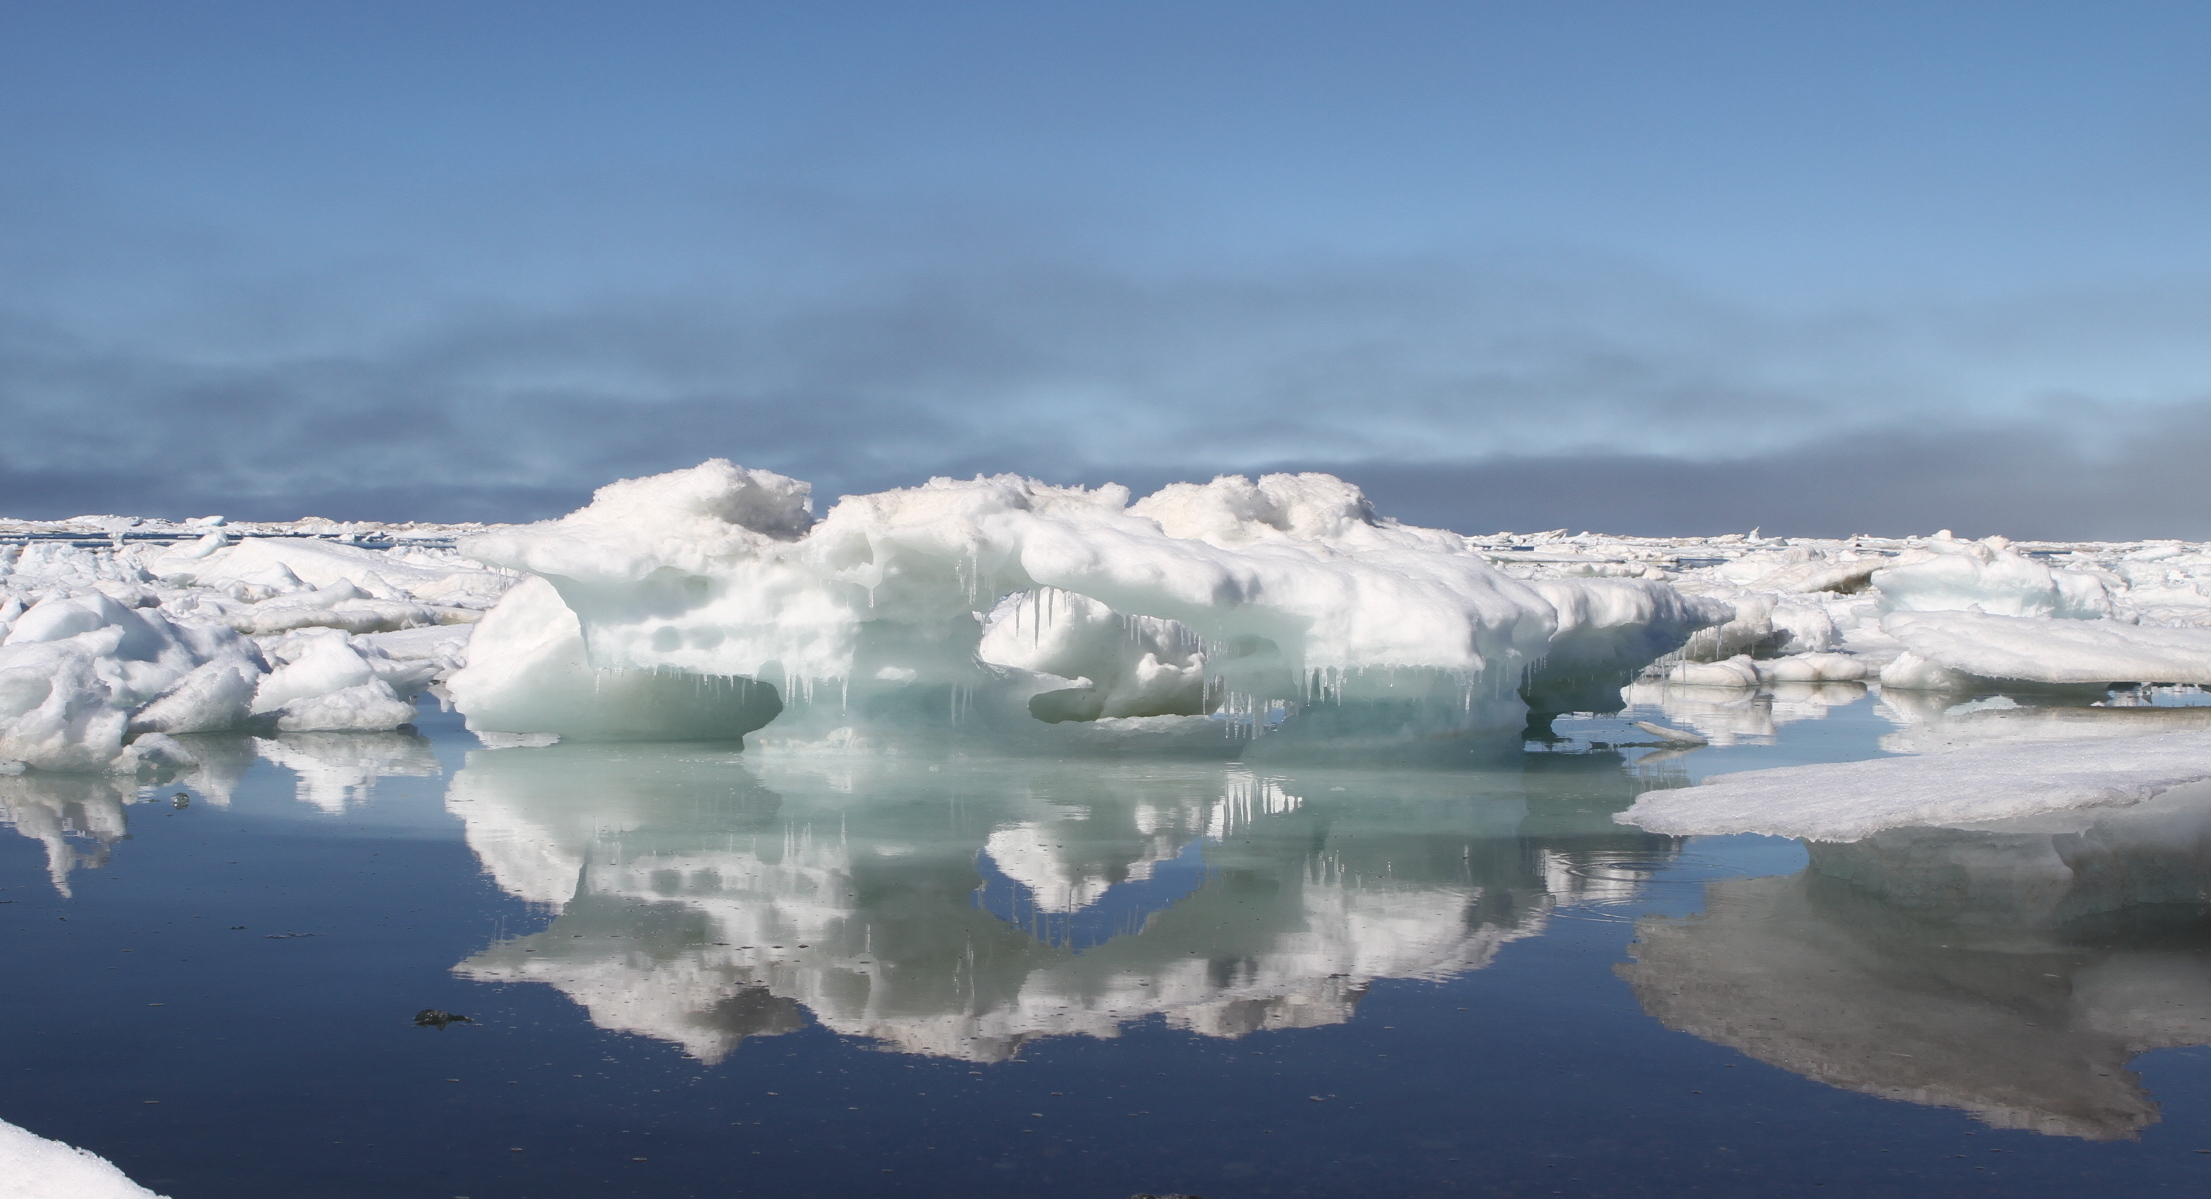 sea ice extent sinks to record lows at both poles nasa